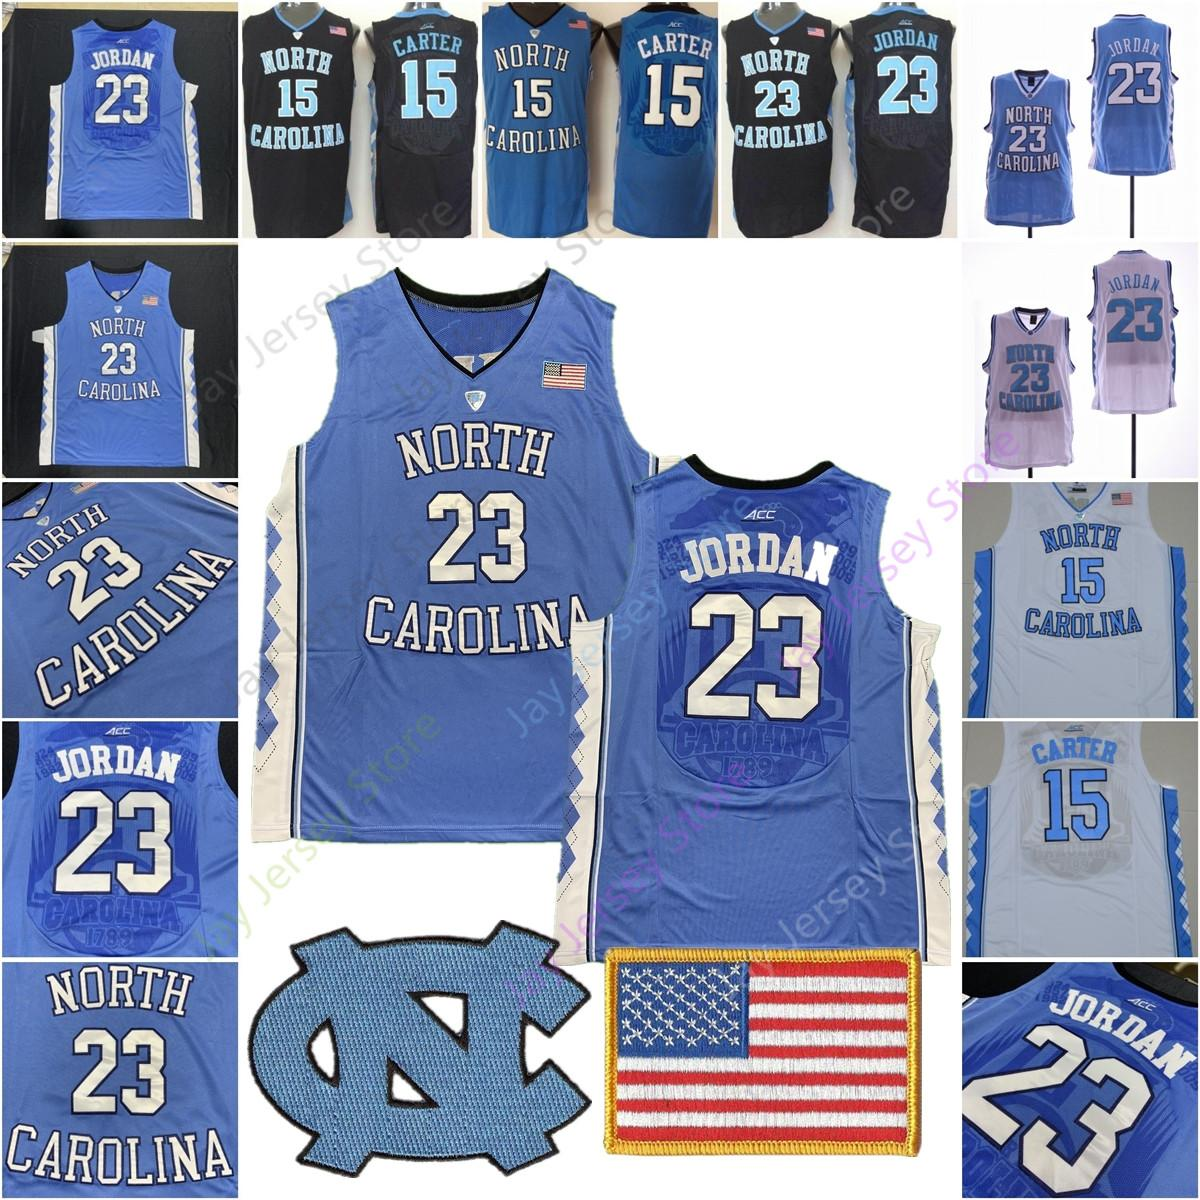 low priced 22b7e e1ff1 NCAA North Carolina Basketball Jersey College Michael Vince Carter Jerseys  Home Away Blue Black White Men Size S-3XL